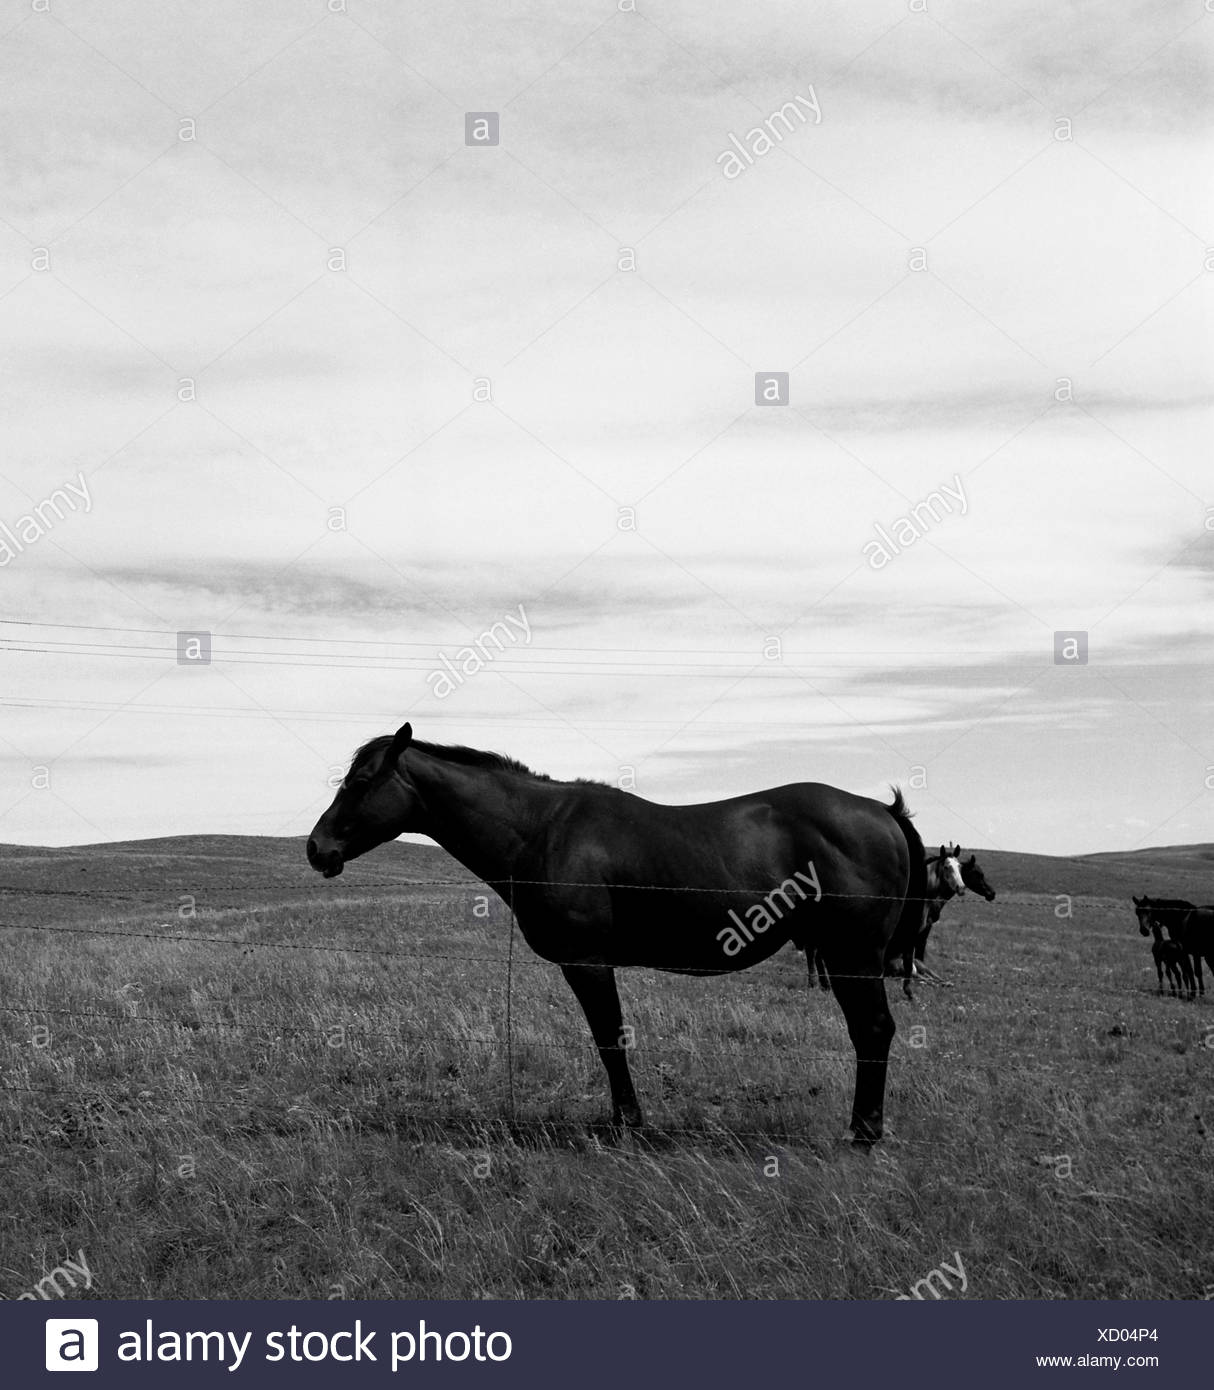 A black and white, square image of a horse standing still. - Stock Image